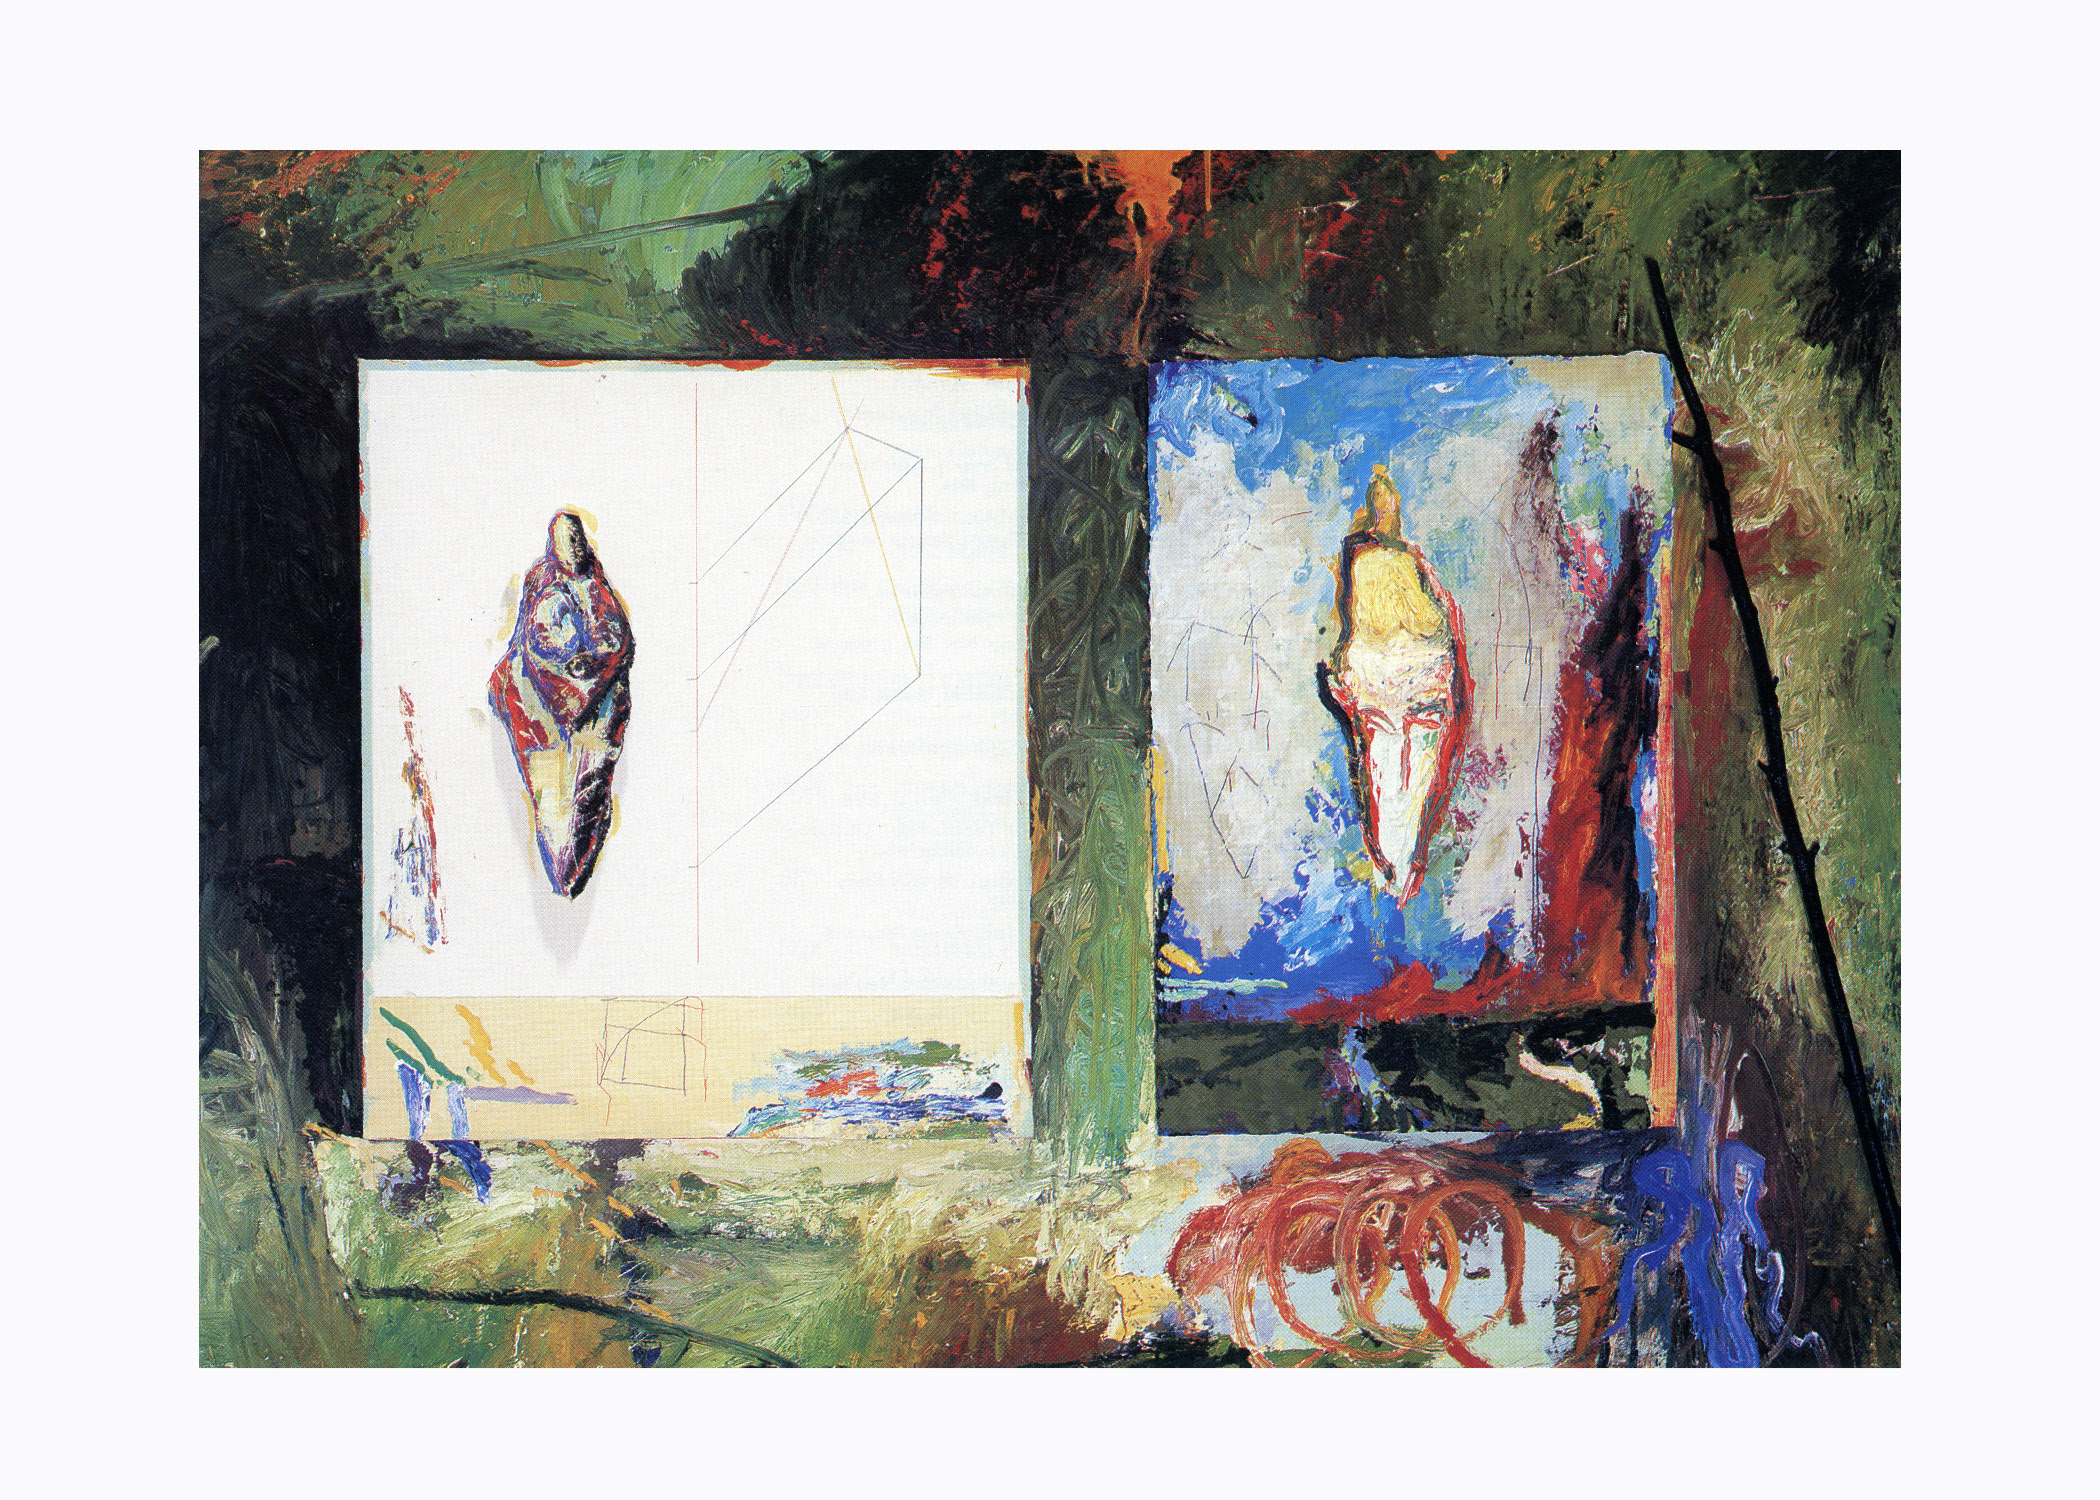 Keith Mitchell,  Angels of Lespugue , 1989, oil and mixed media on wood panel, maple tree branch,L 53 x H 37 x W 3.5 inches.Private collection.